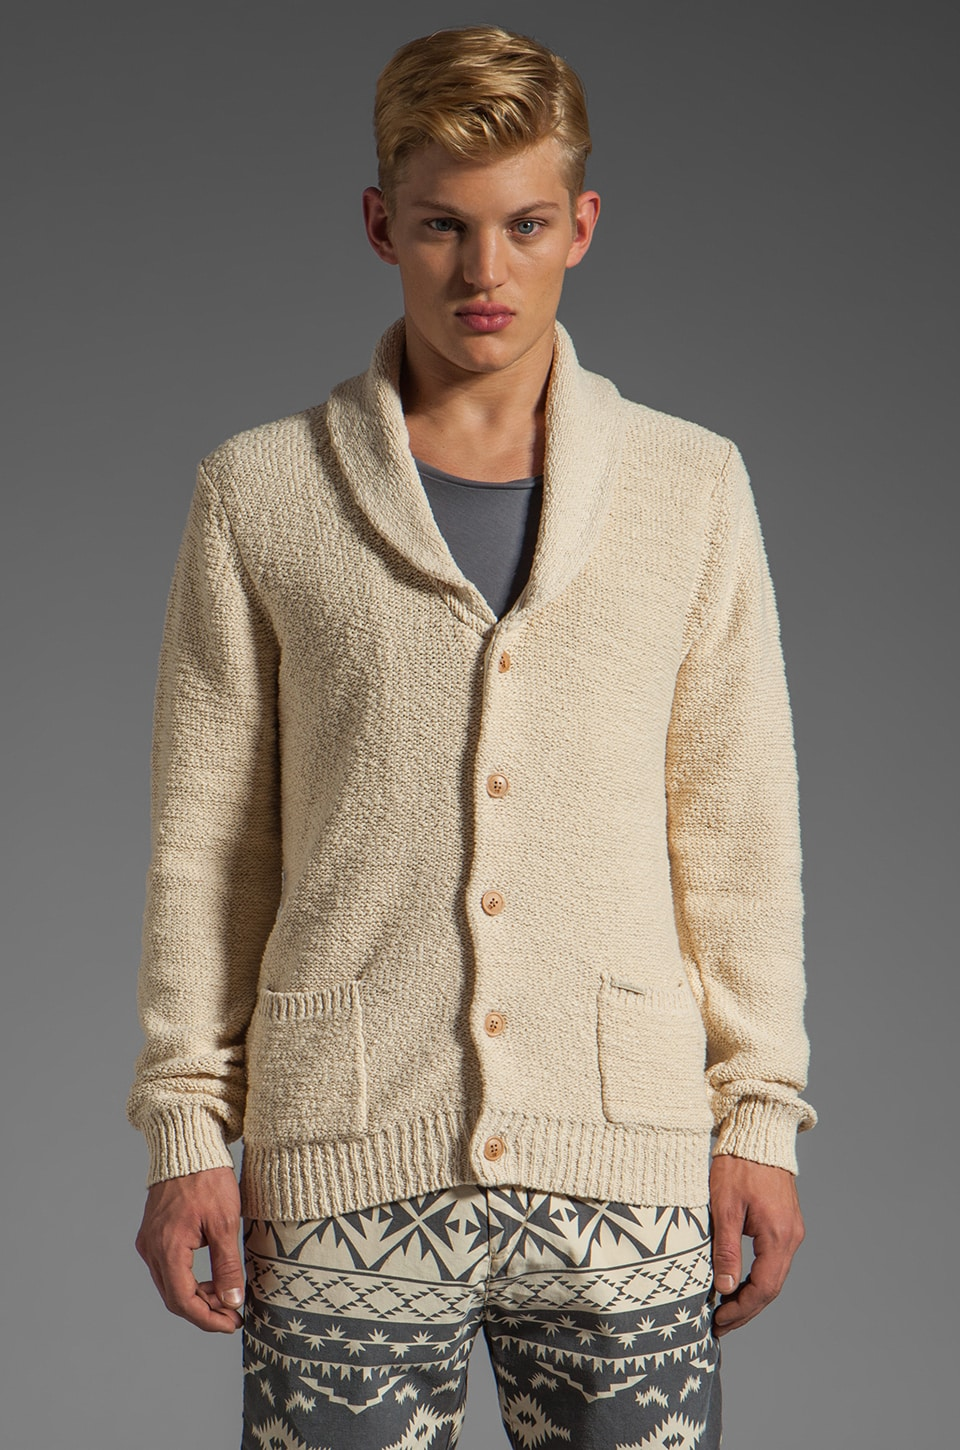 Scotch & Soda Shawl Cardigan in Ecru